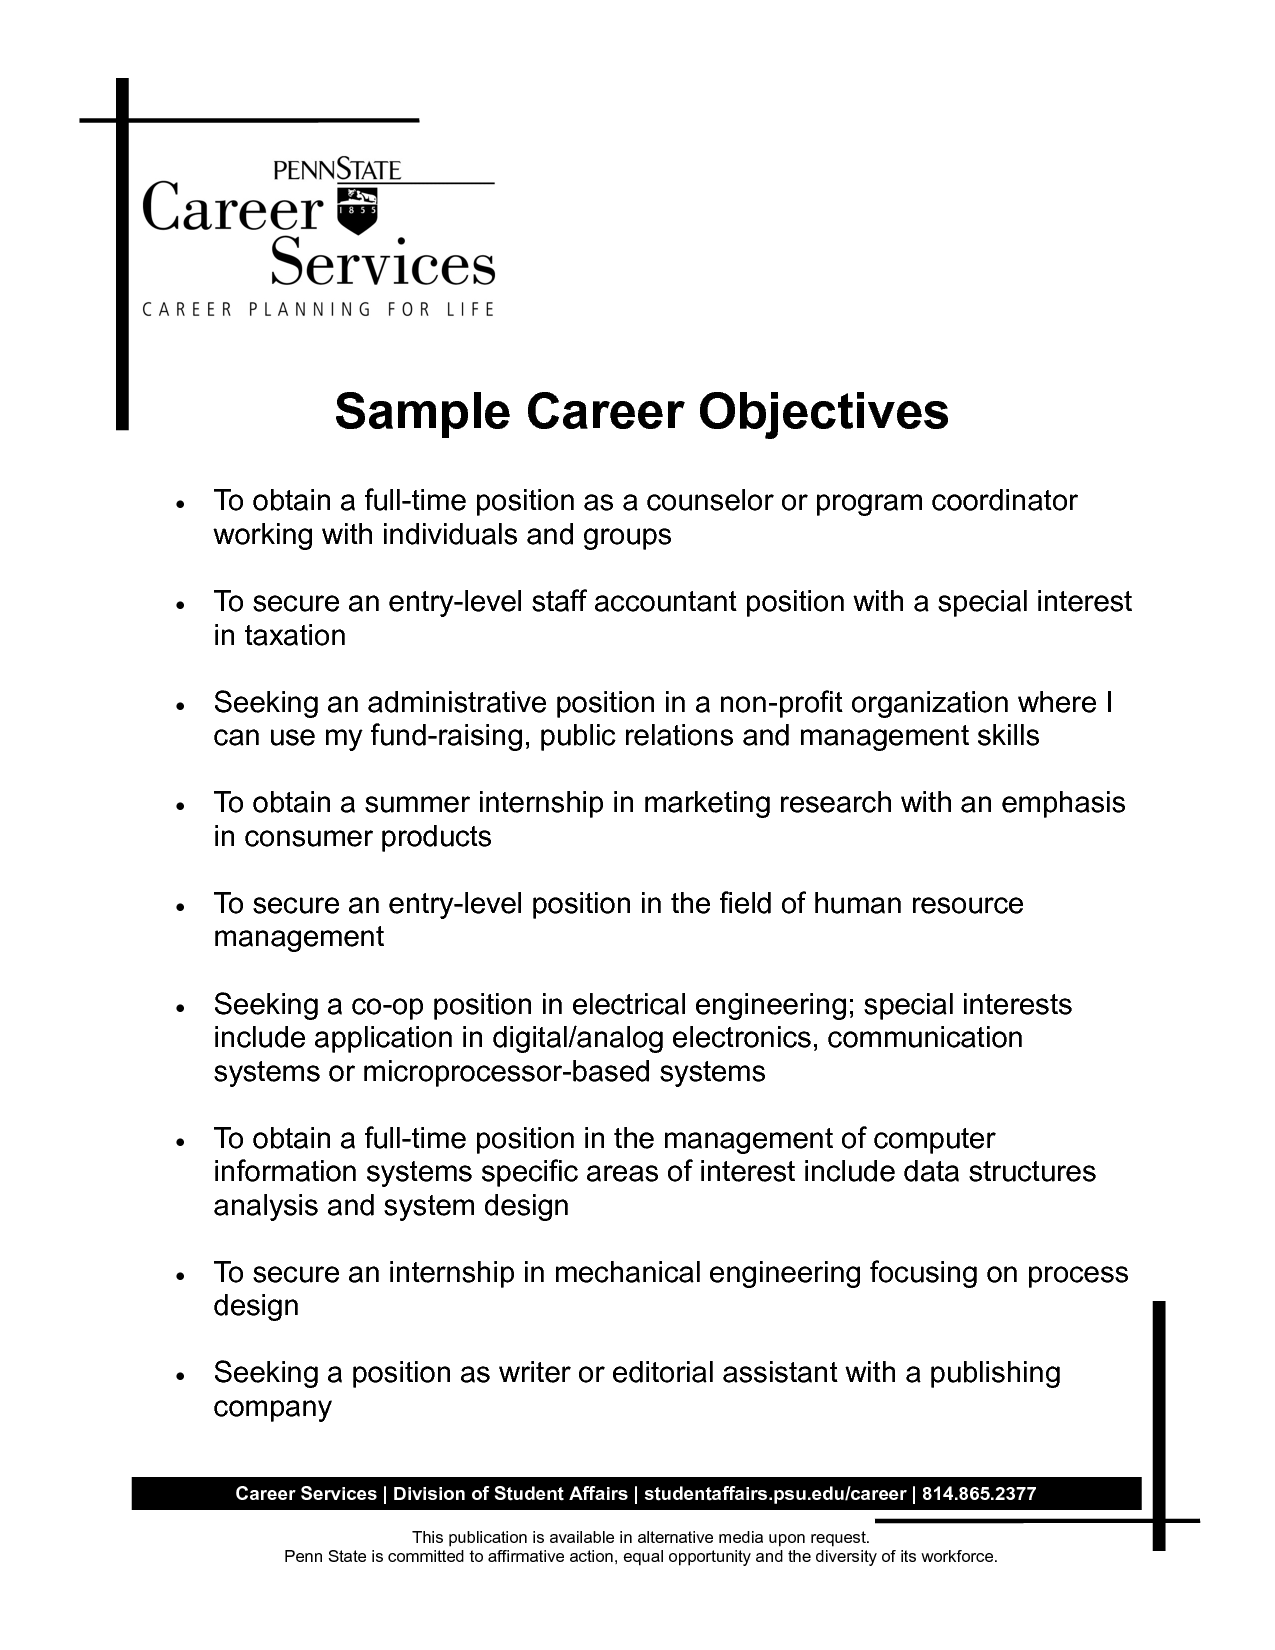 career goal essays should students be paid for good grades professional goals essay example sample career objective statements some potition ofgallery of resume career objective examples